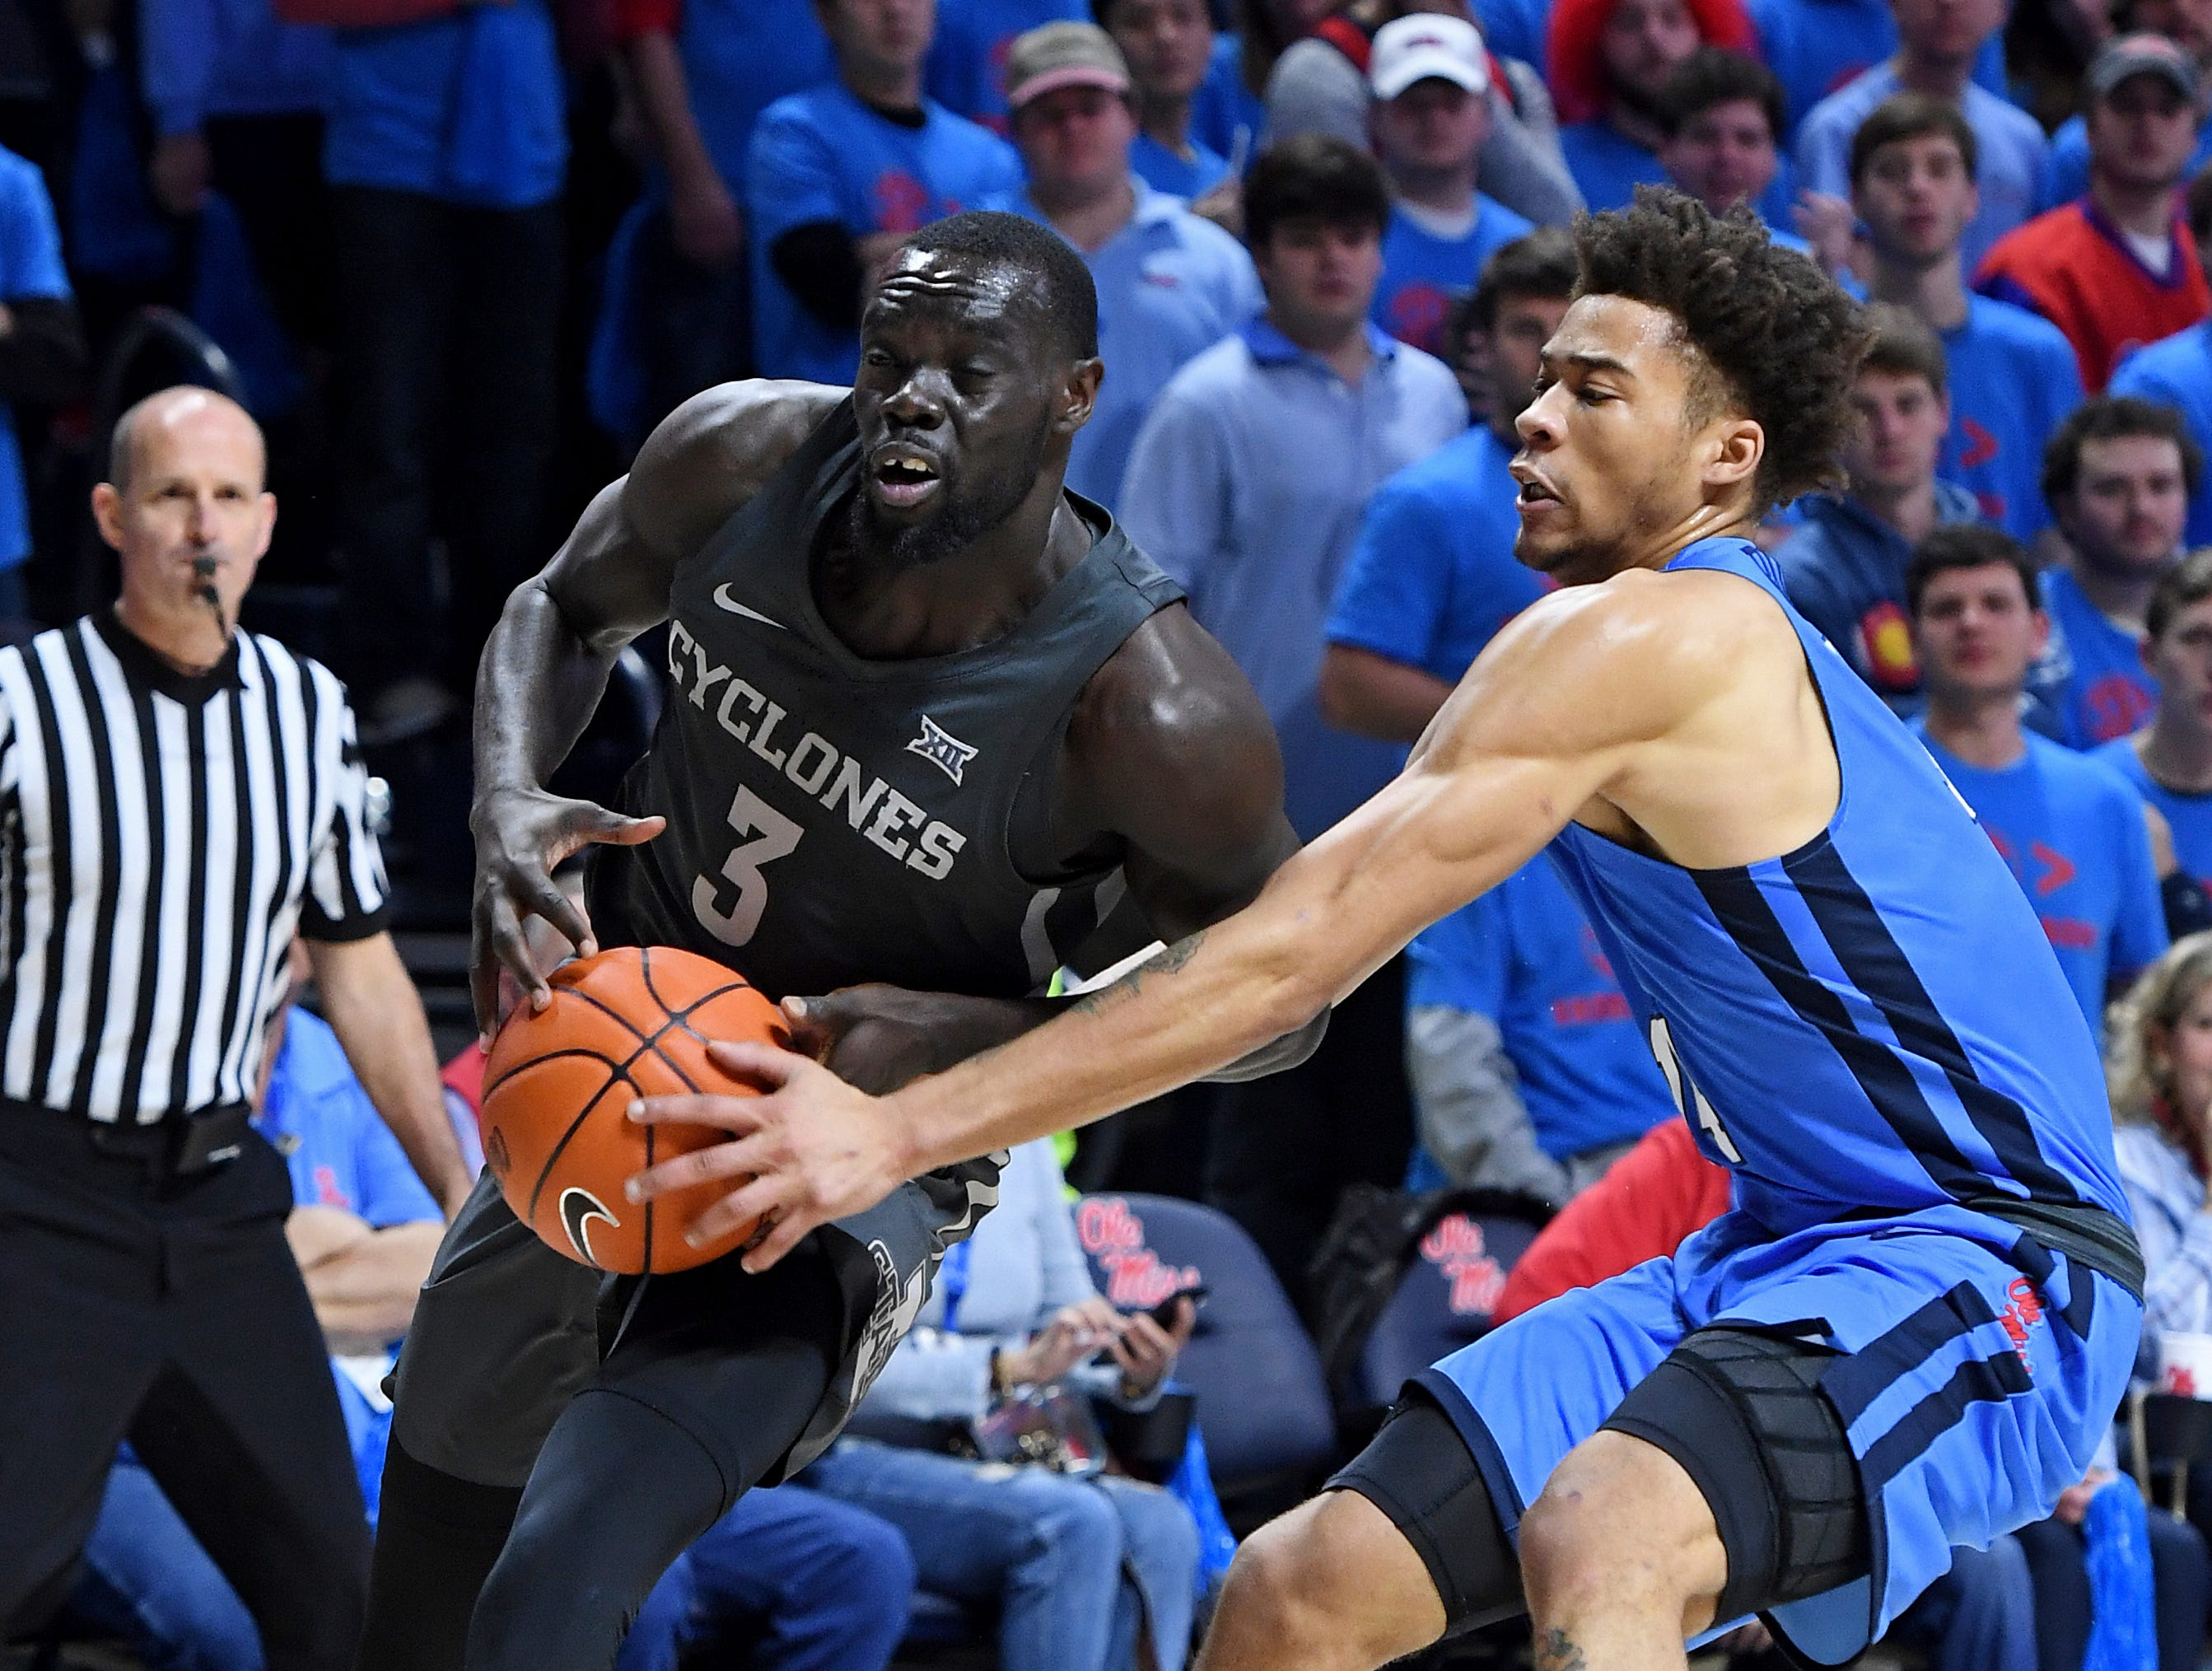 Mississippi forward KJ Buffen (14) guards Iowa State guard Marial Shayok (3) during the first half of an NCAA college basketball game in Oxford, Miss., Saturday, Jan. 26, 2019.